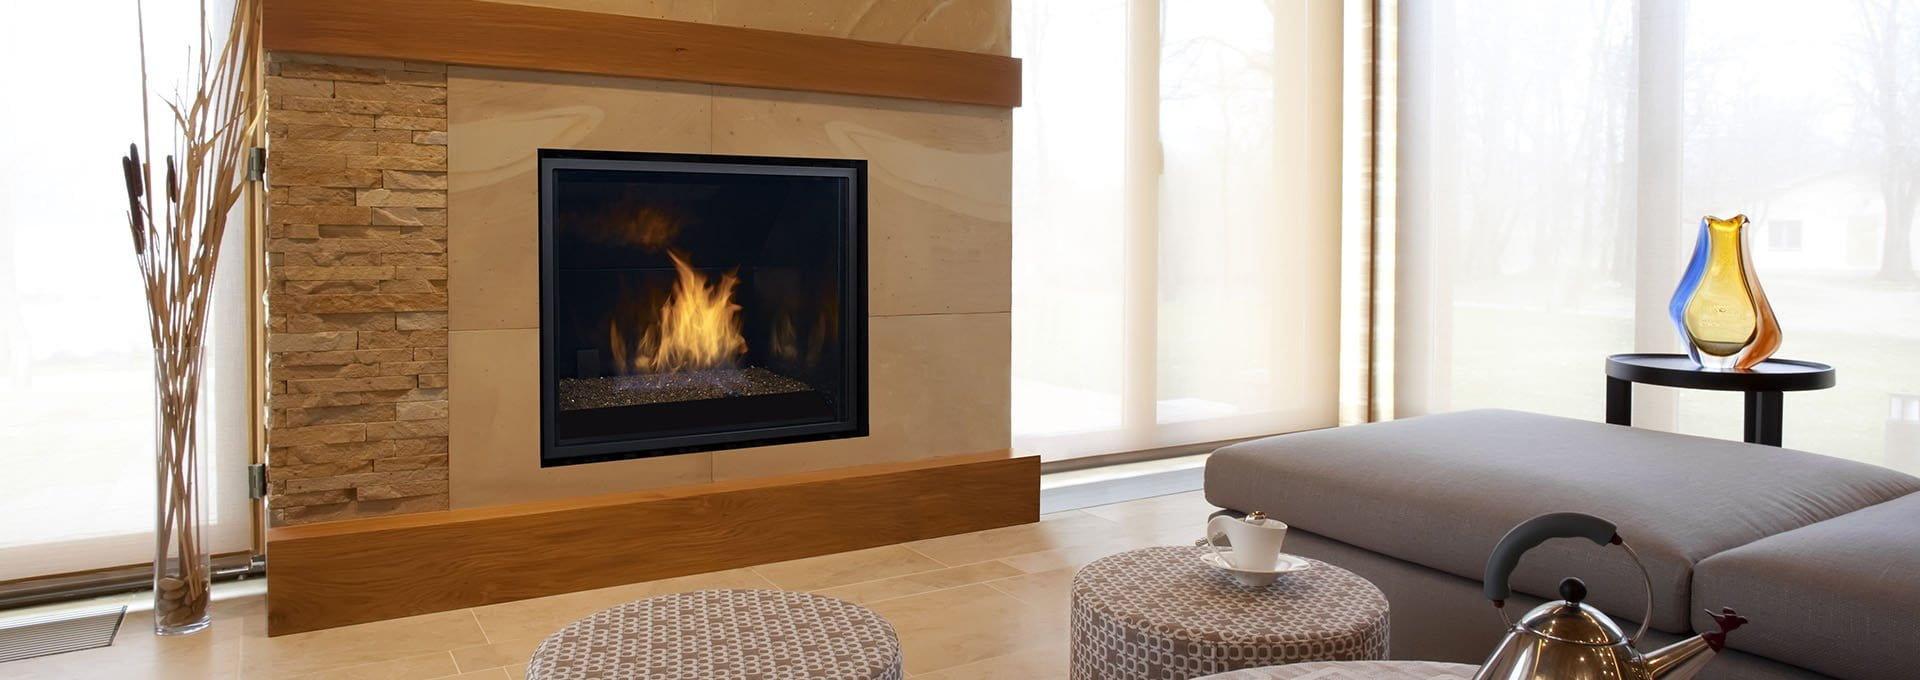 natural with mount wall designs design ideas also tv gas modern above in fireplace fuel interior contemporary